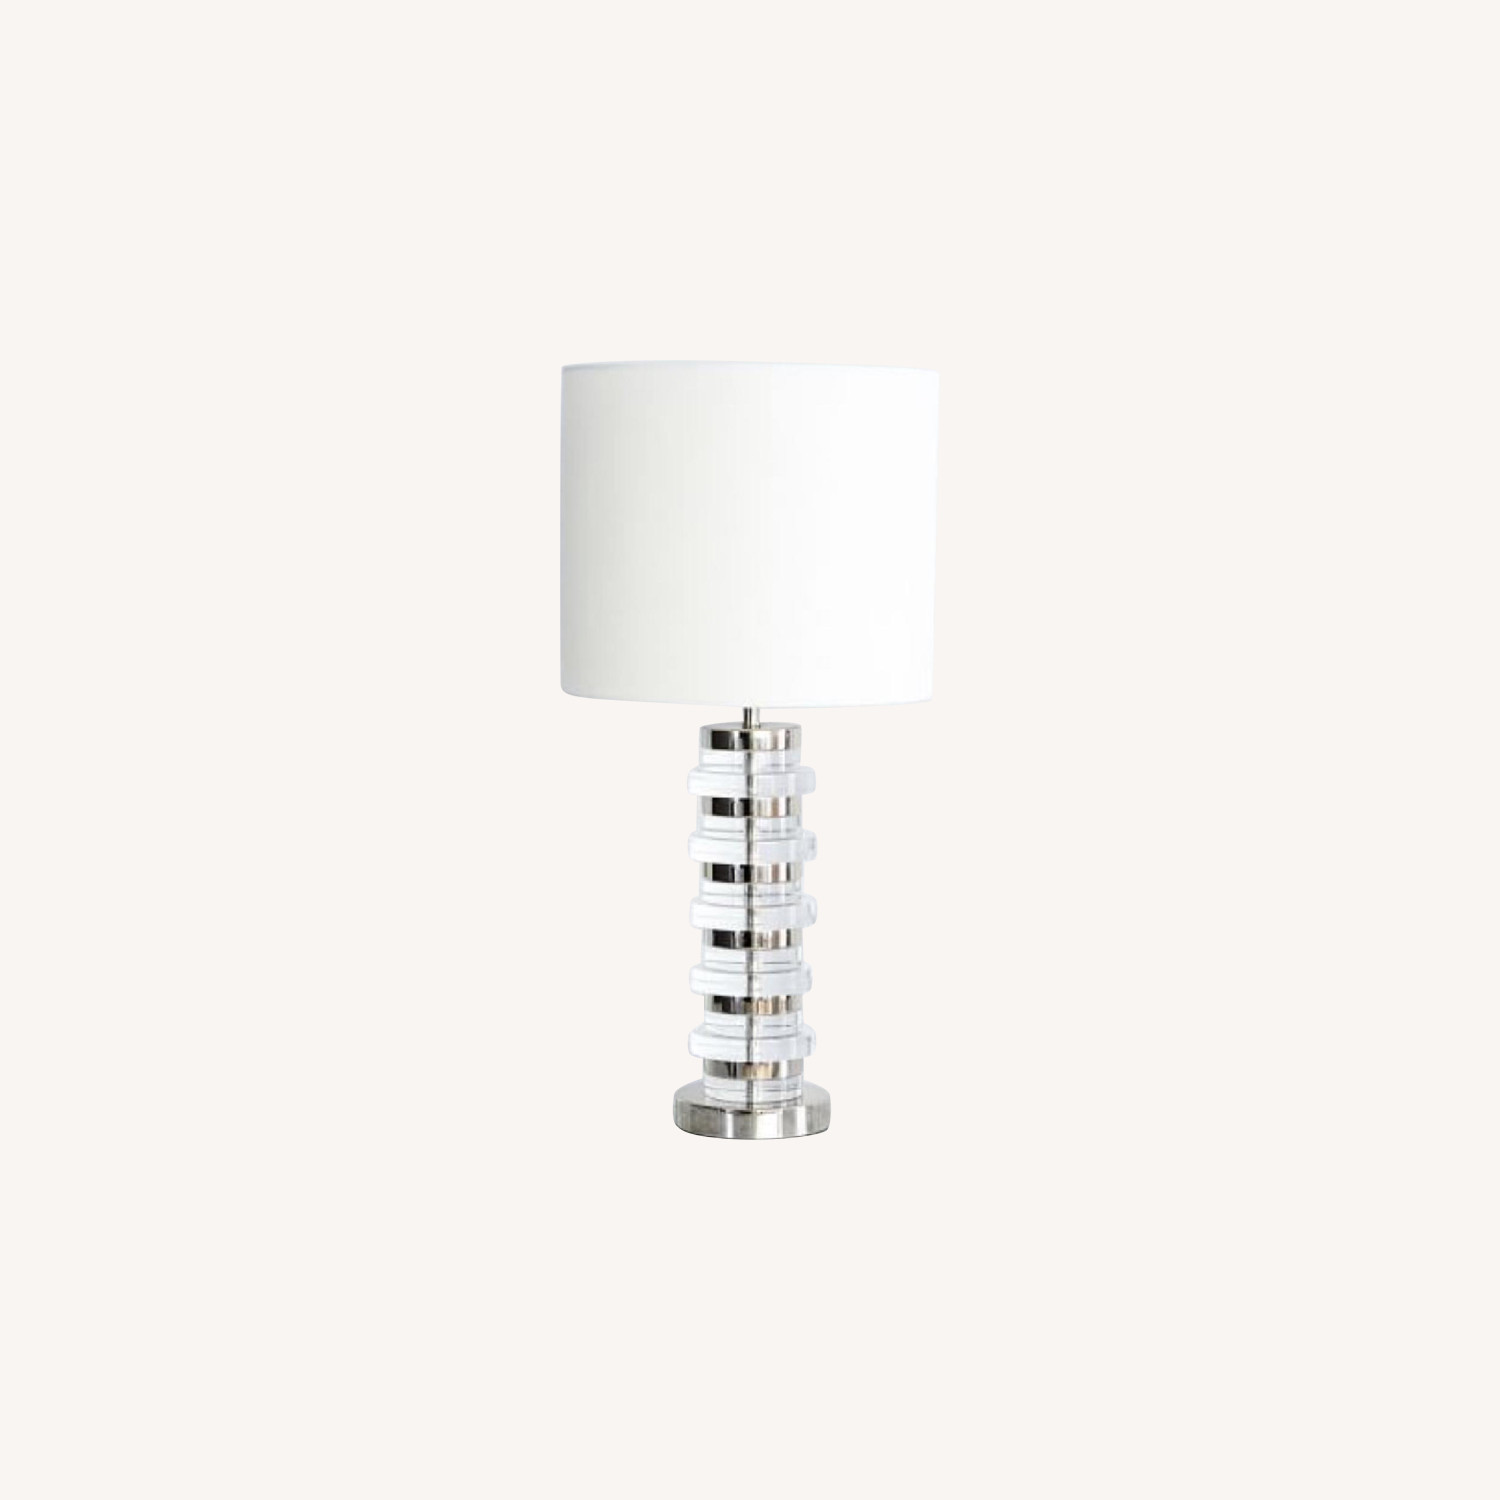 West Elm Clear Disk Table Lamp in Polish Nickel w/ USB